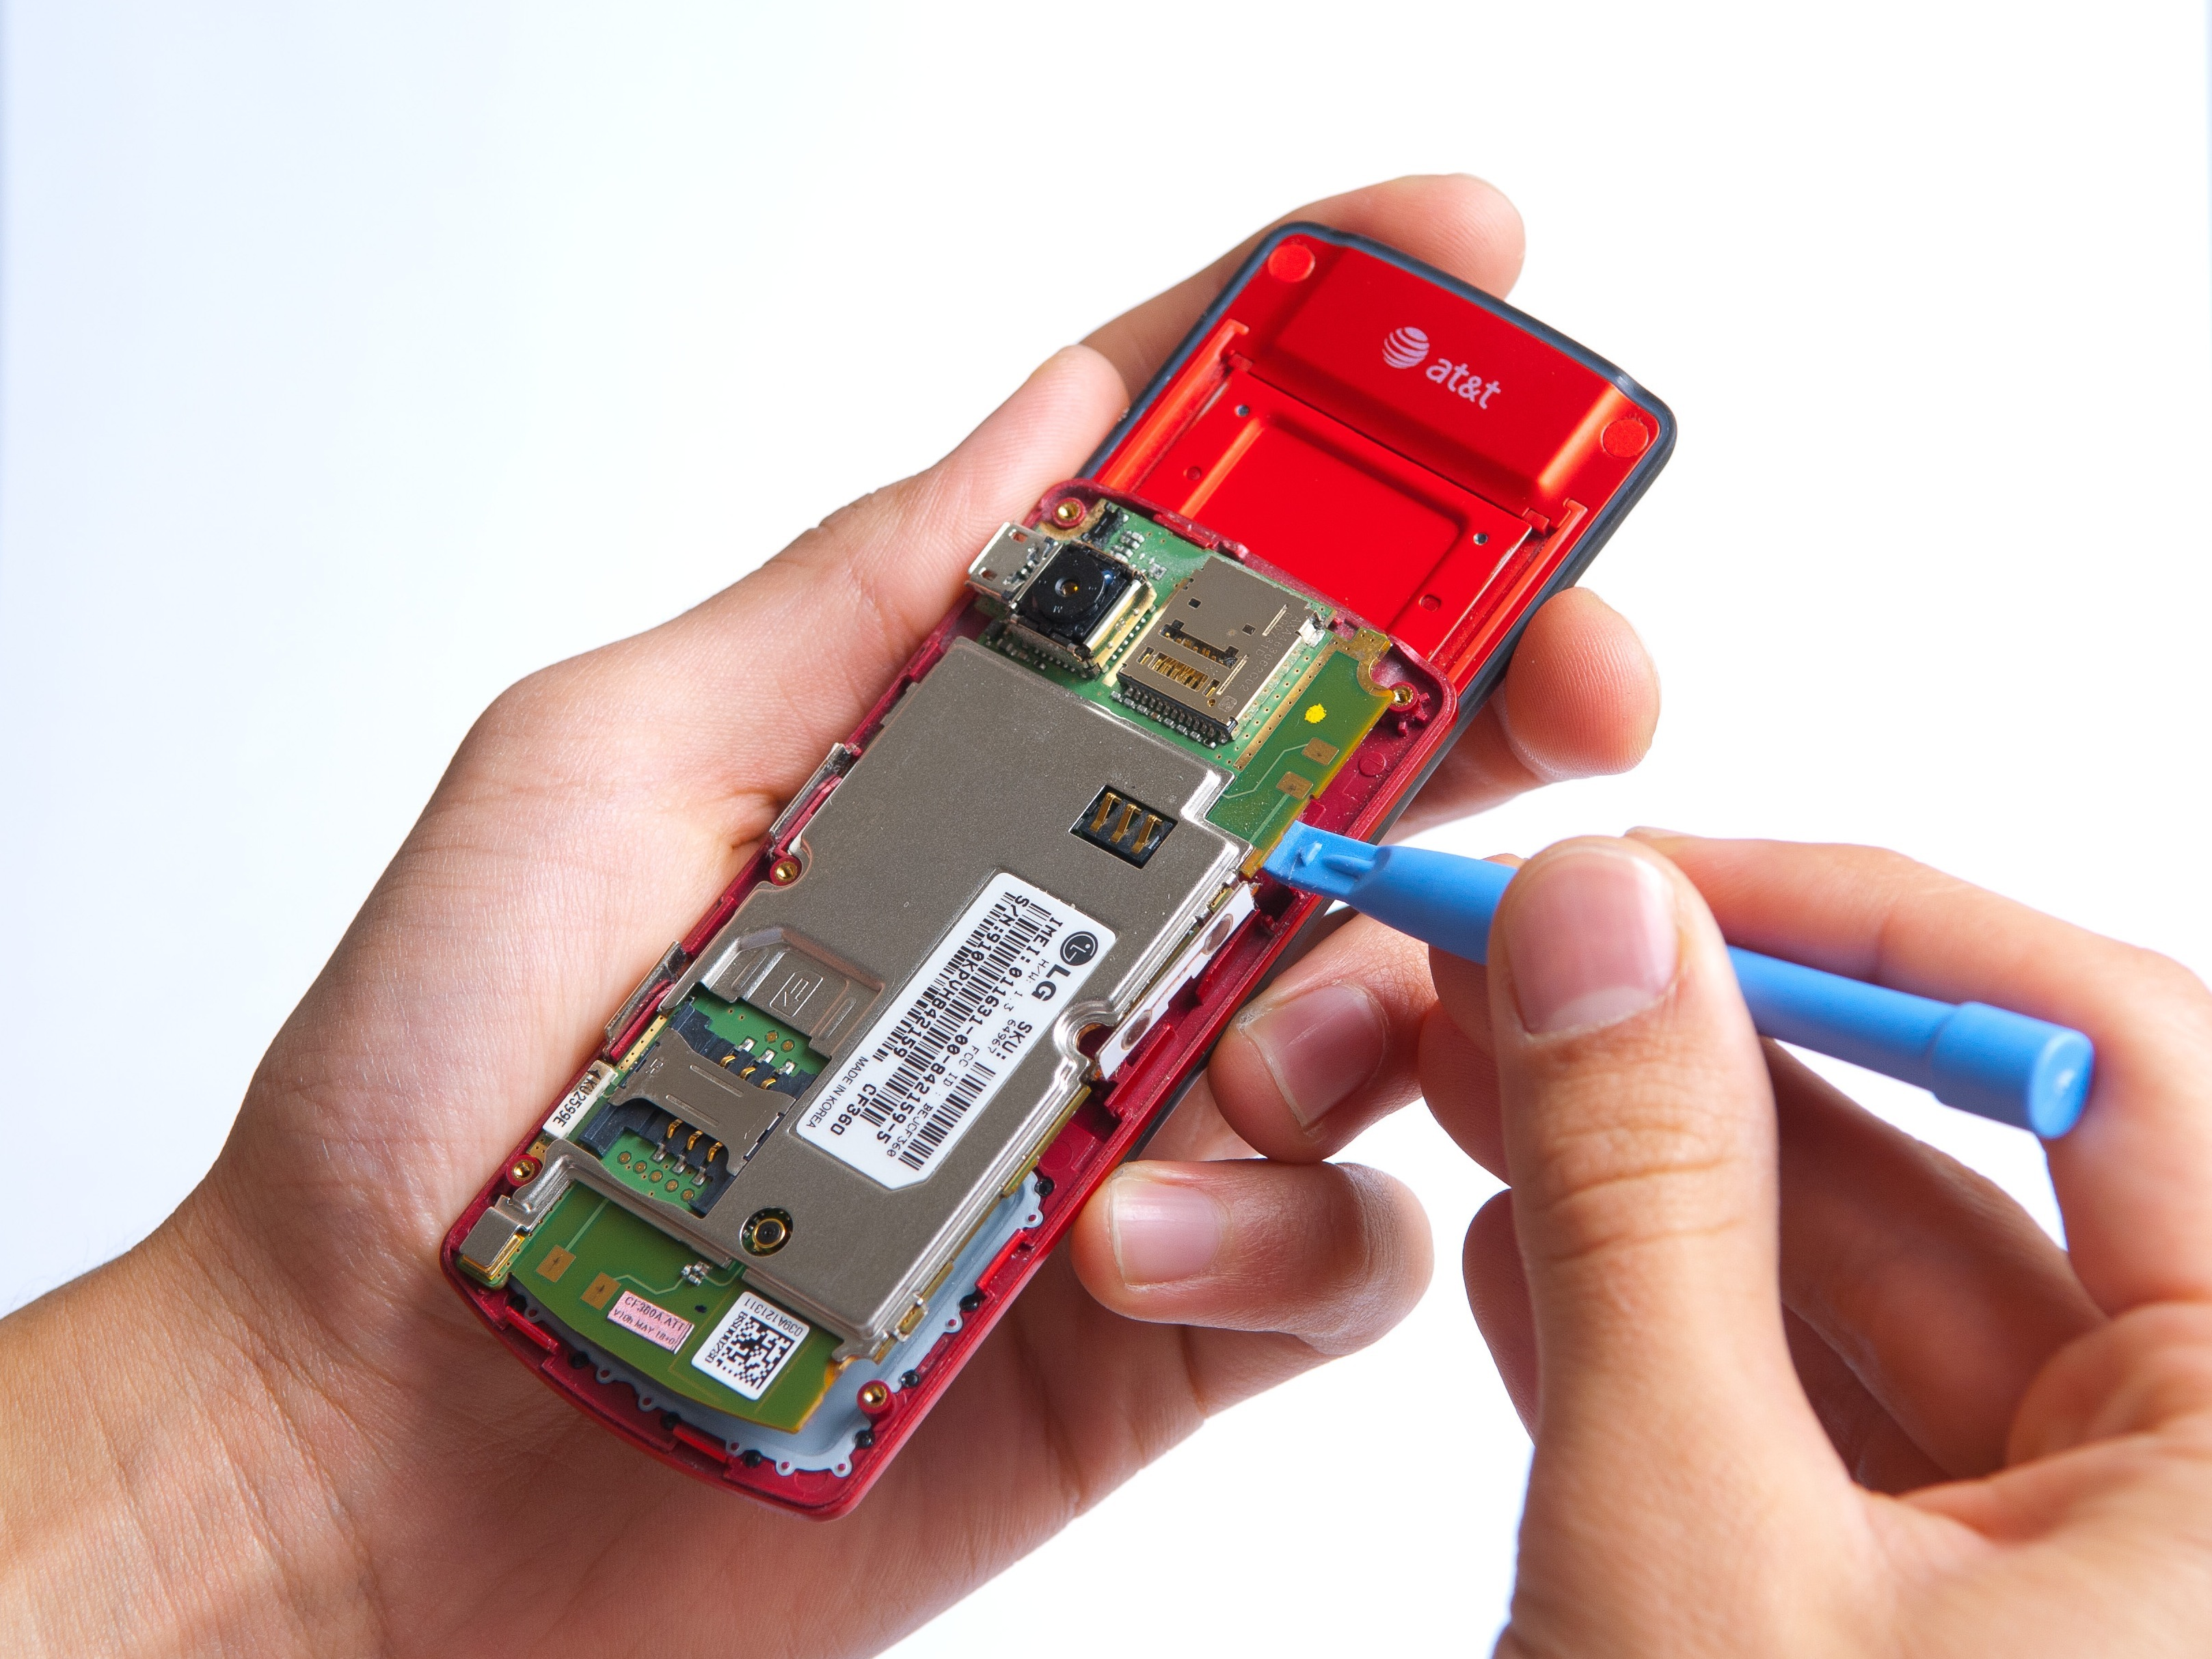 Know More About Mobile Repairing Courses- Enroll Today